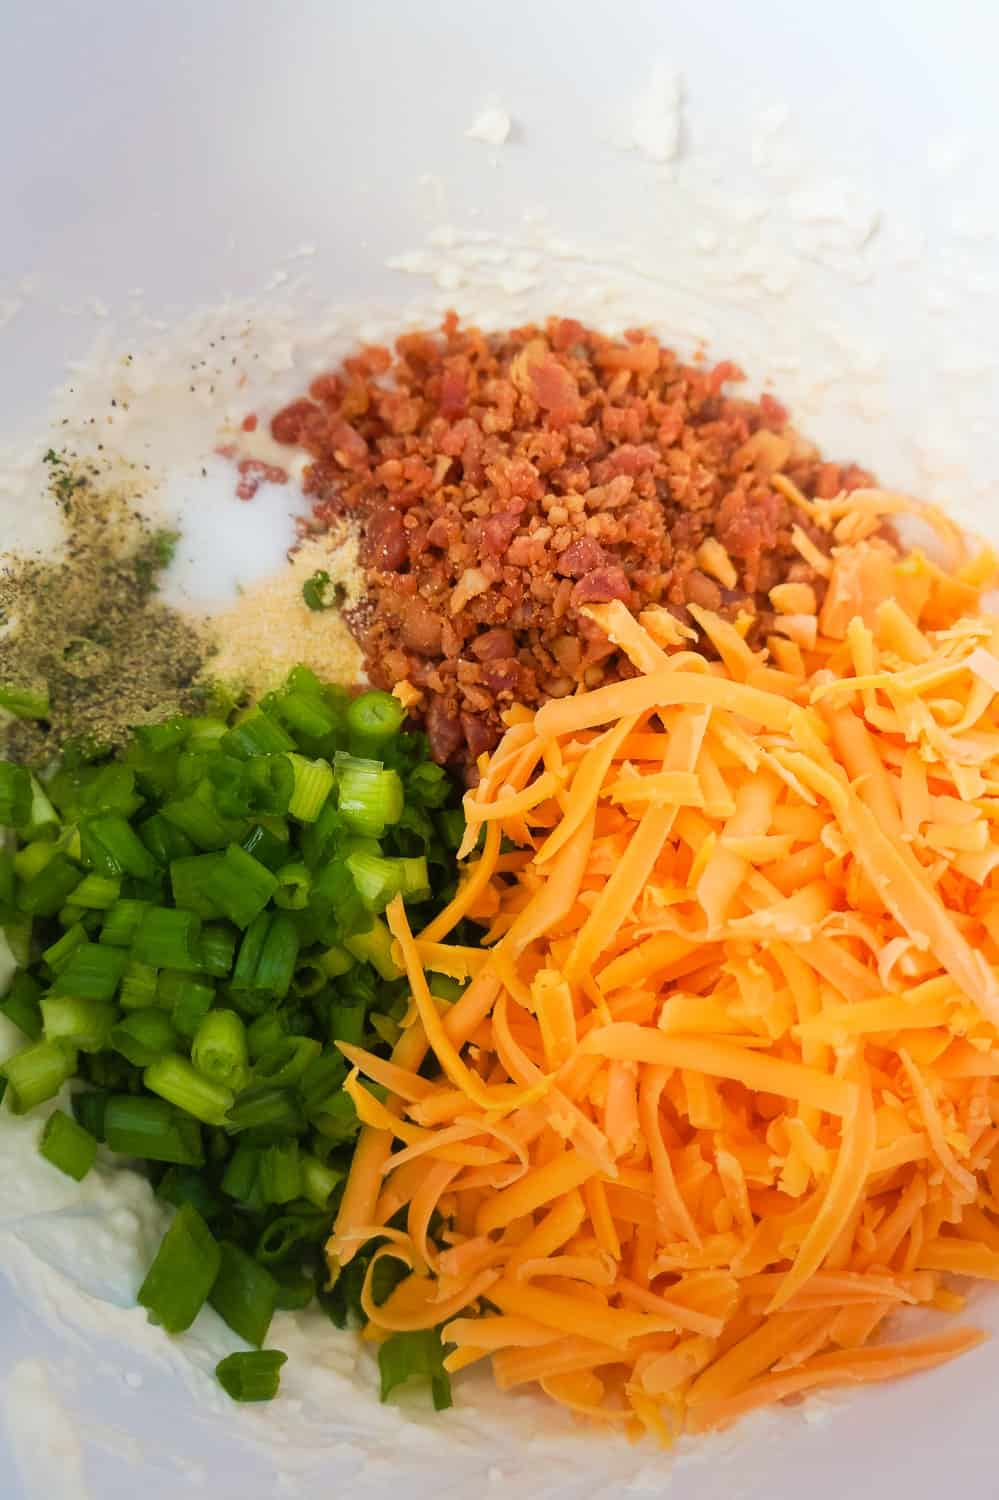 shredded cheddar cheese, real bacon bits and chopped green onions in a mixing bowl